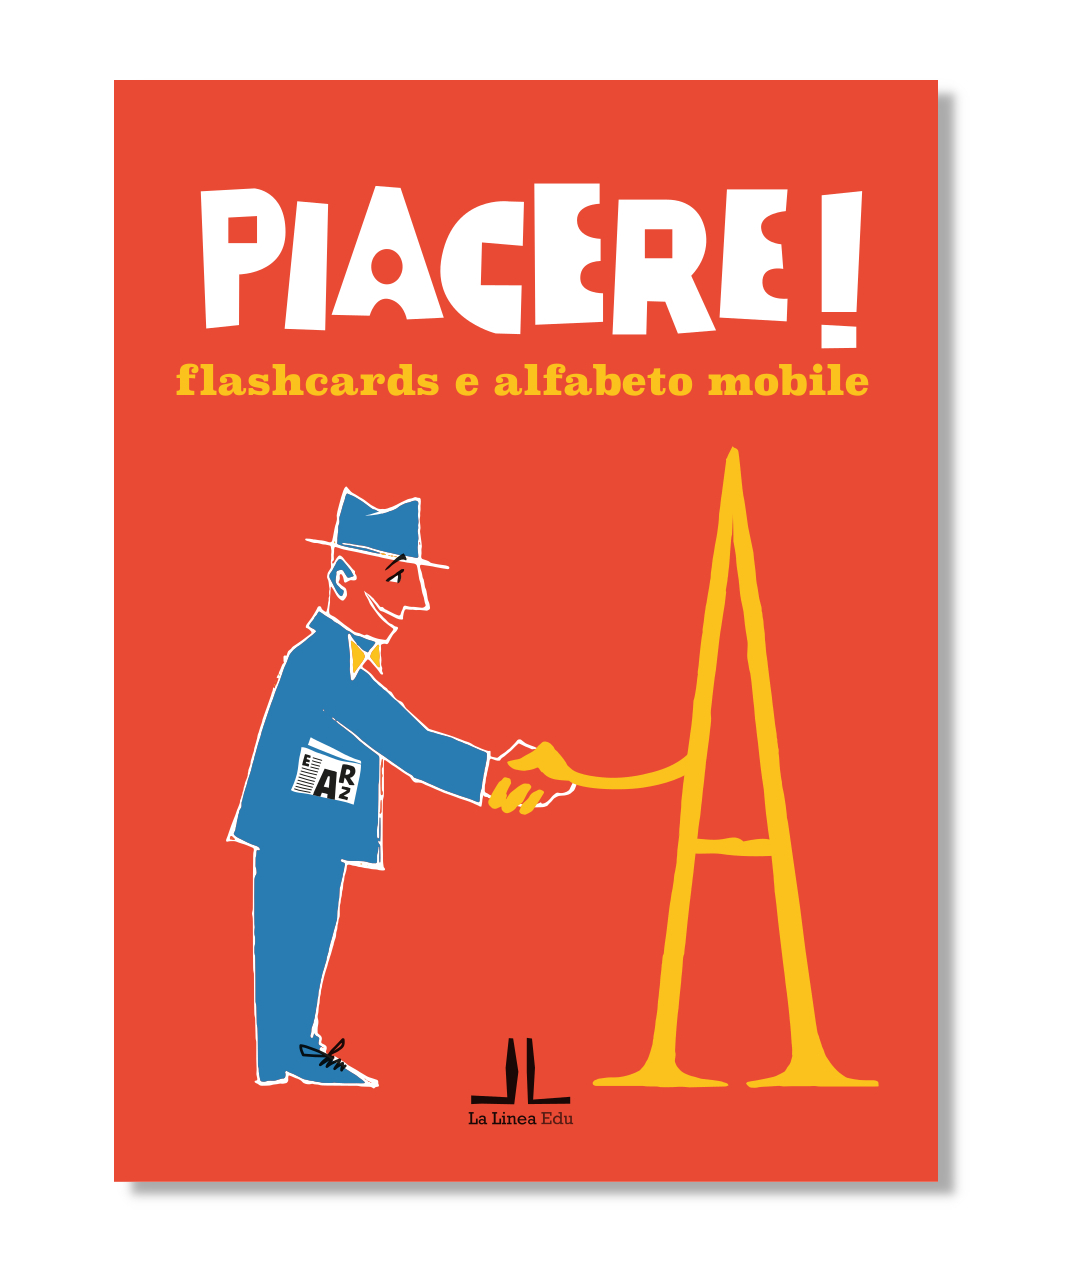 Piacere! Flashcards e alfabeto mobile